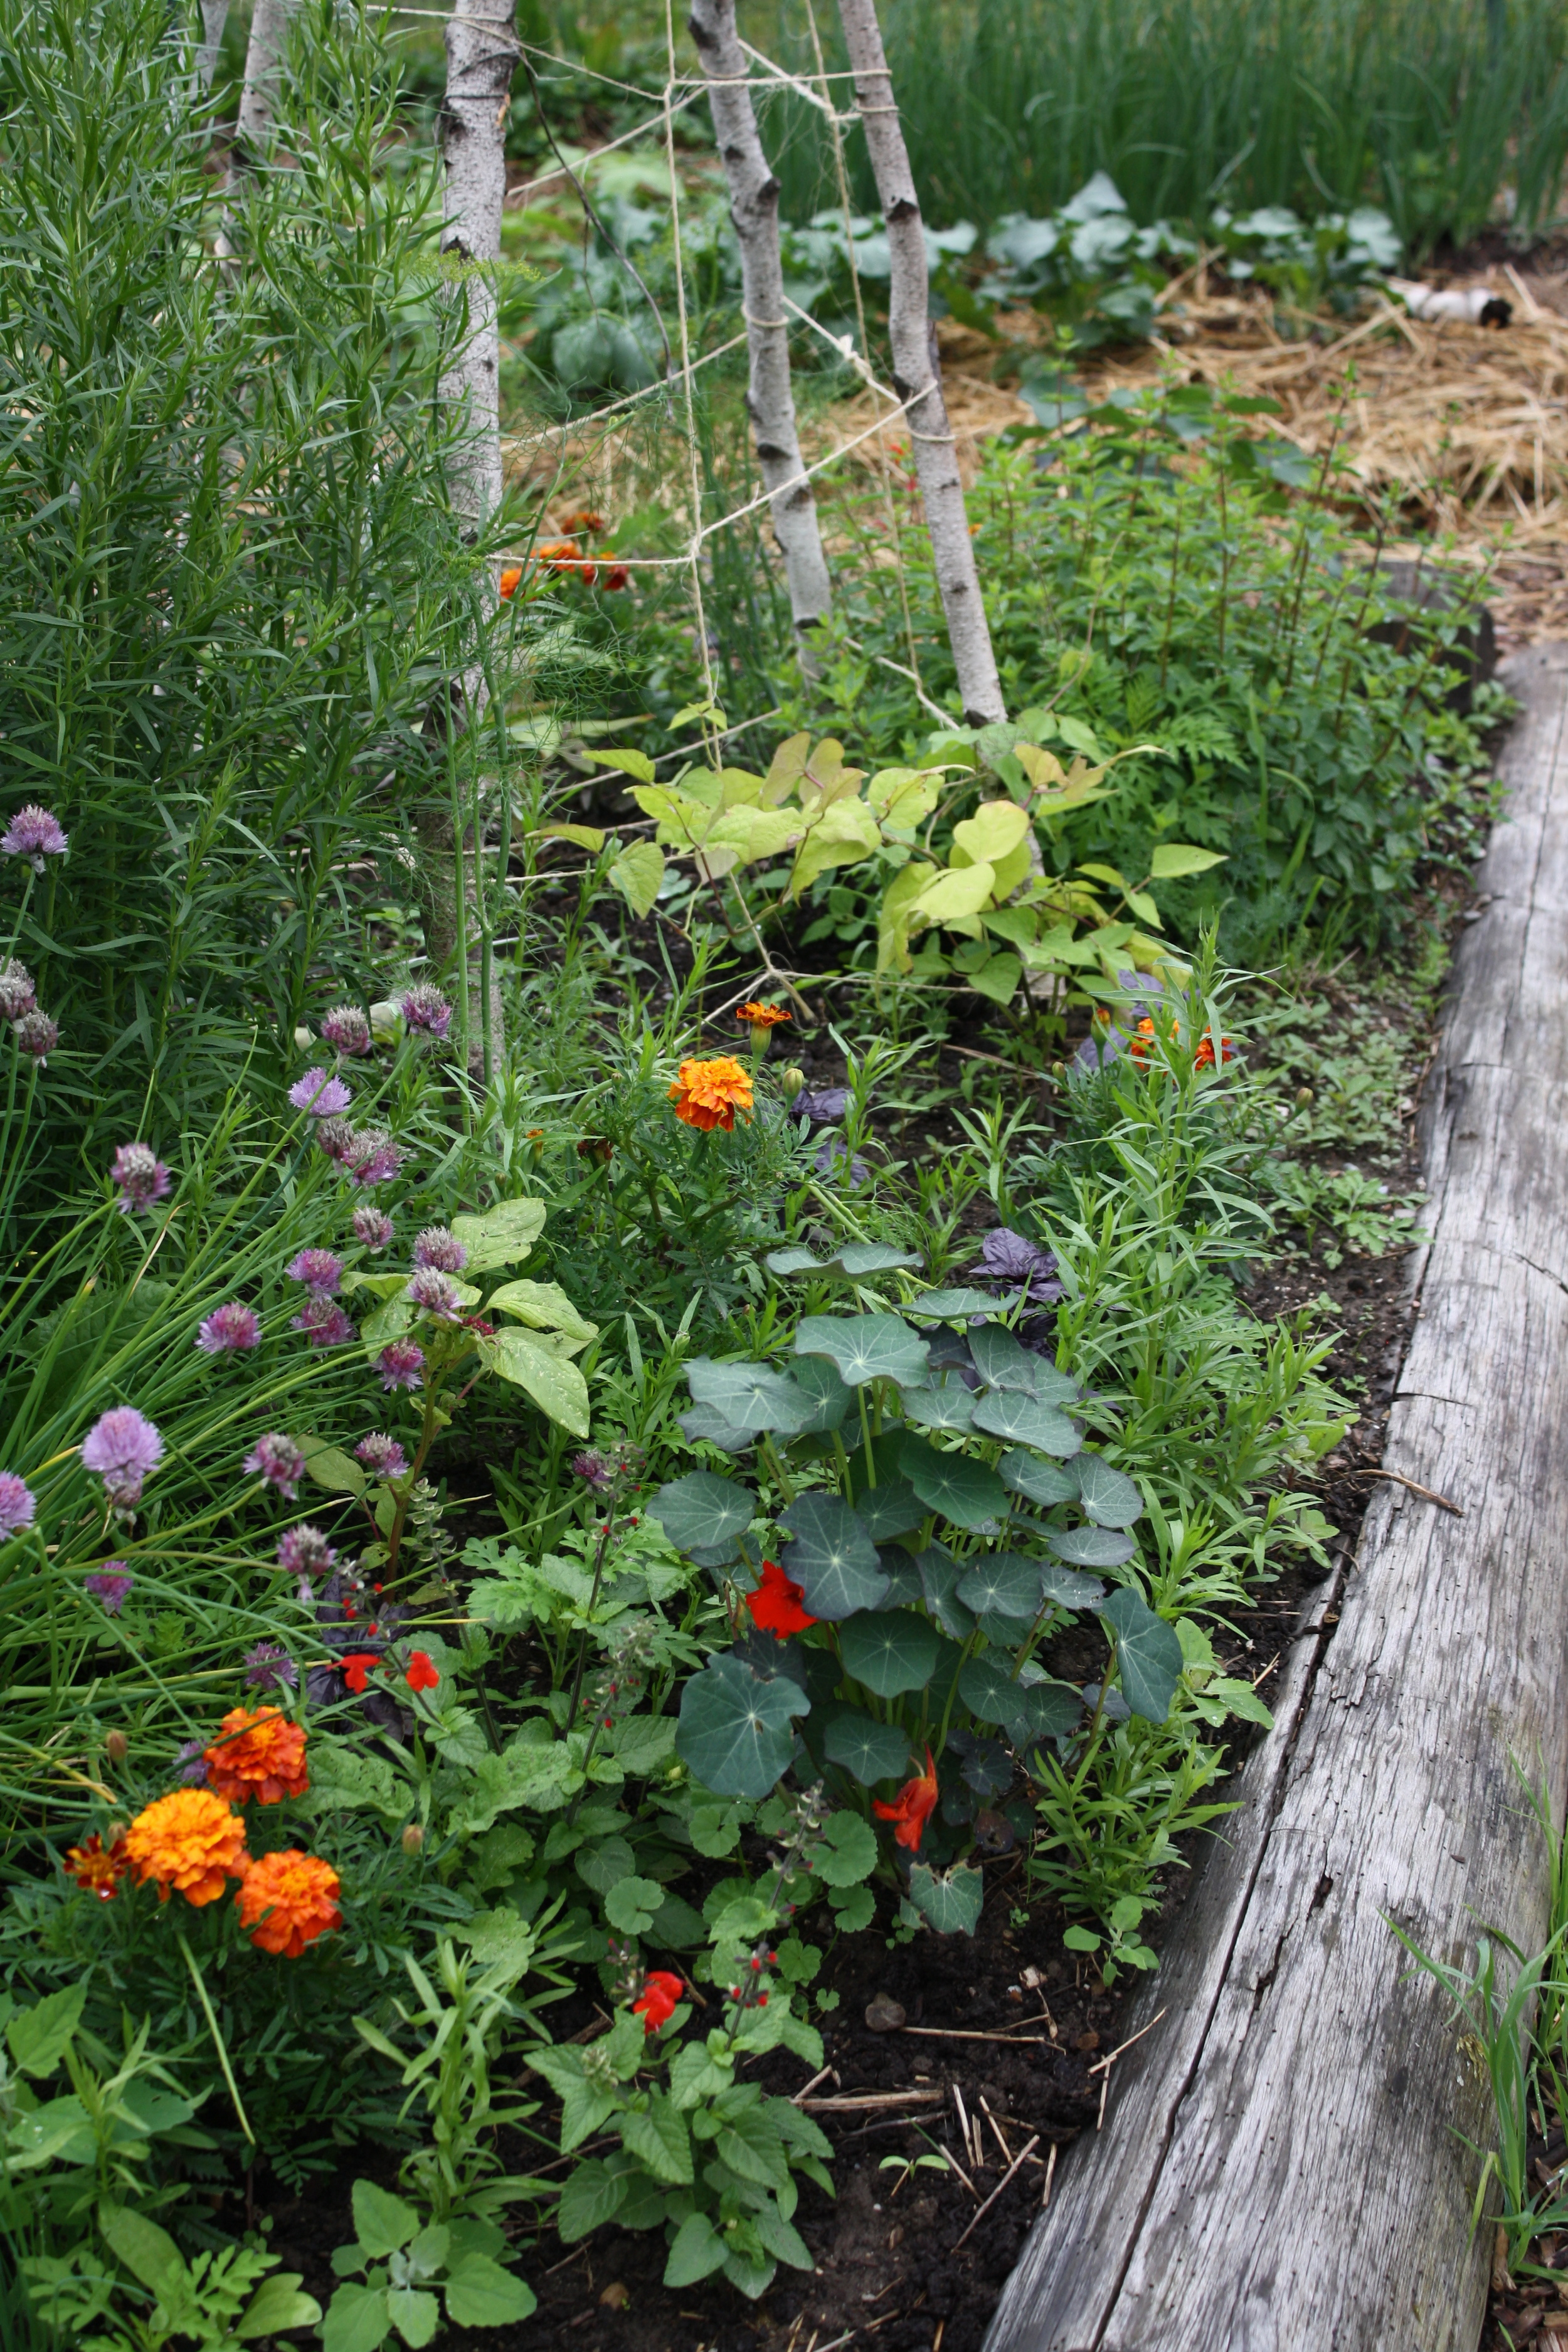 Flowers starting to bloom in herb bed/focal point of kitchen garden